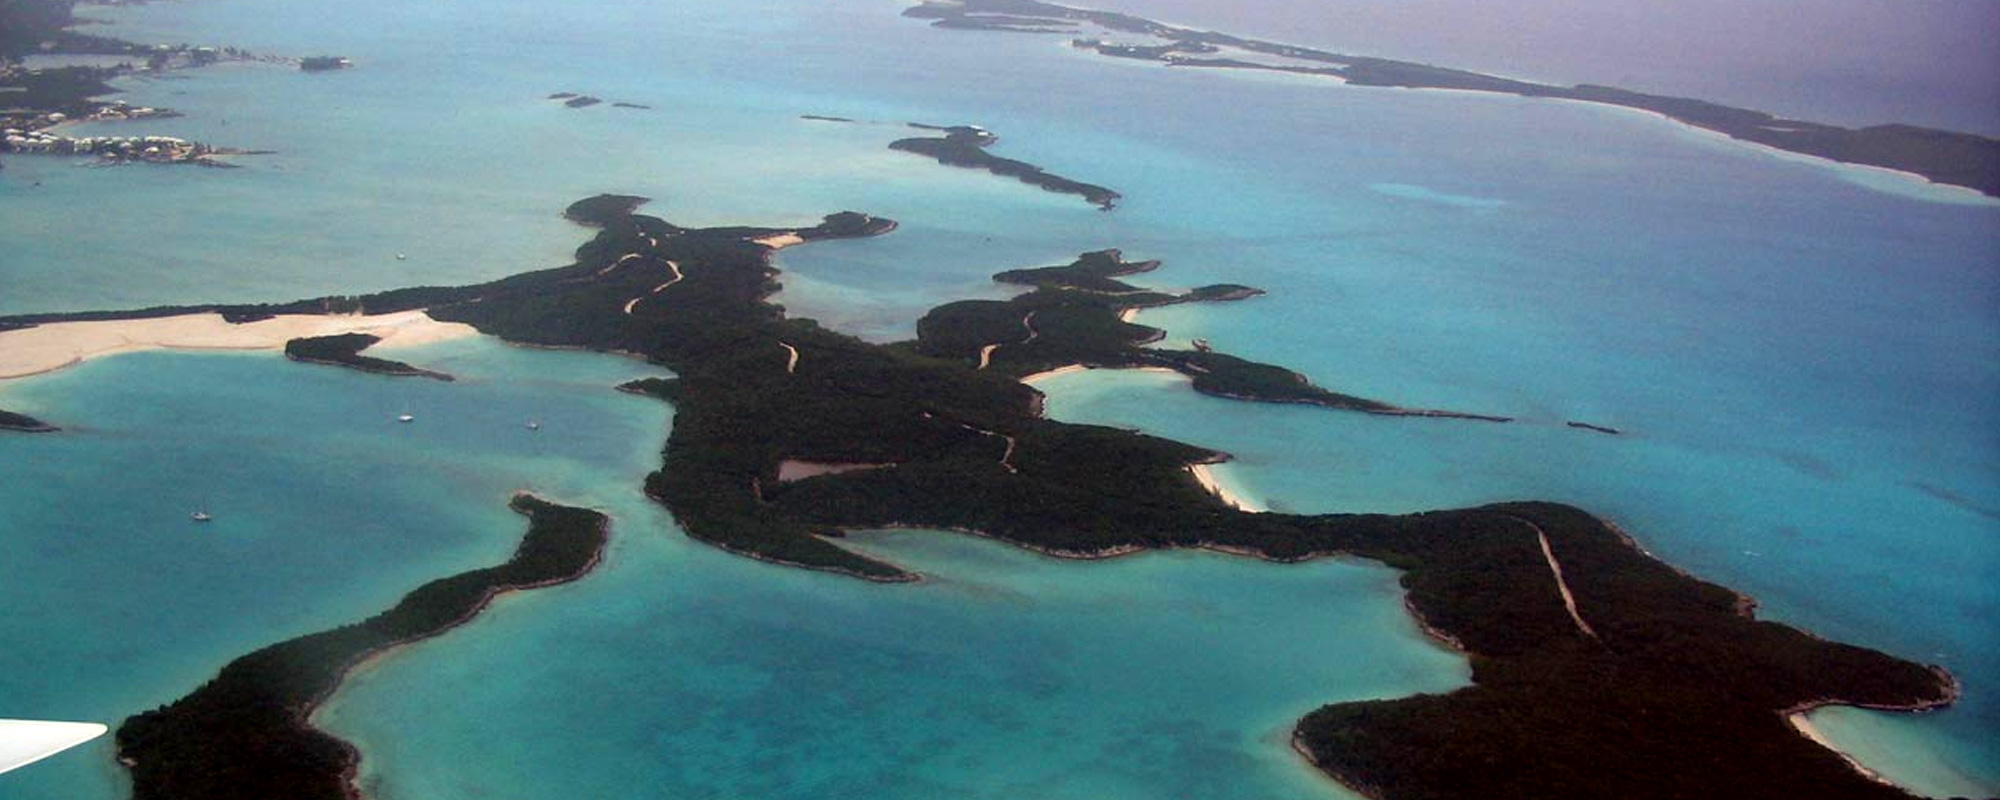 Crab Cay Development, Great Exuma, Bahamas